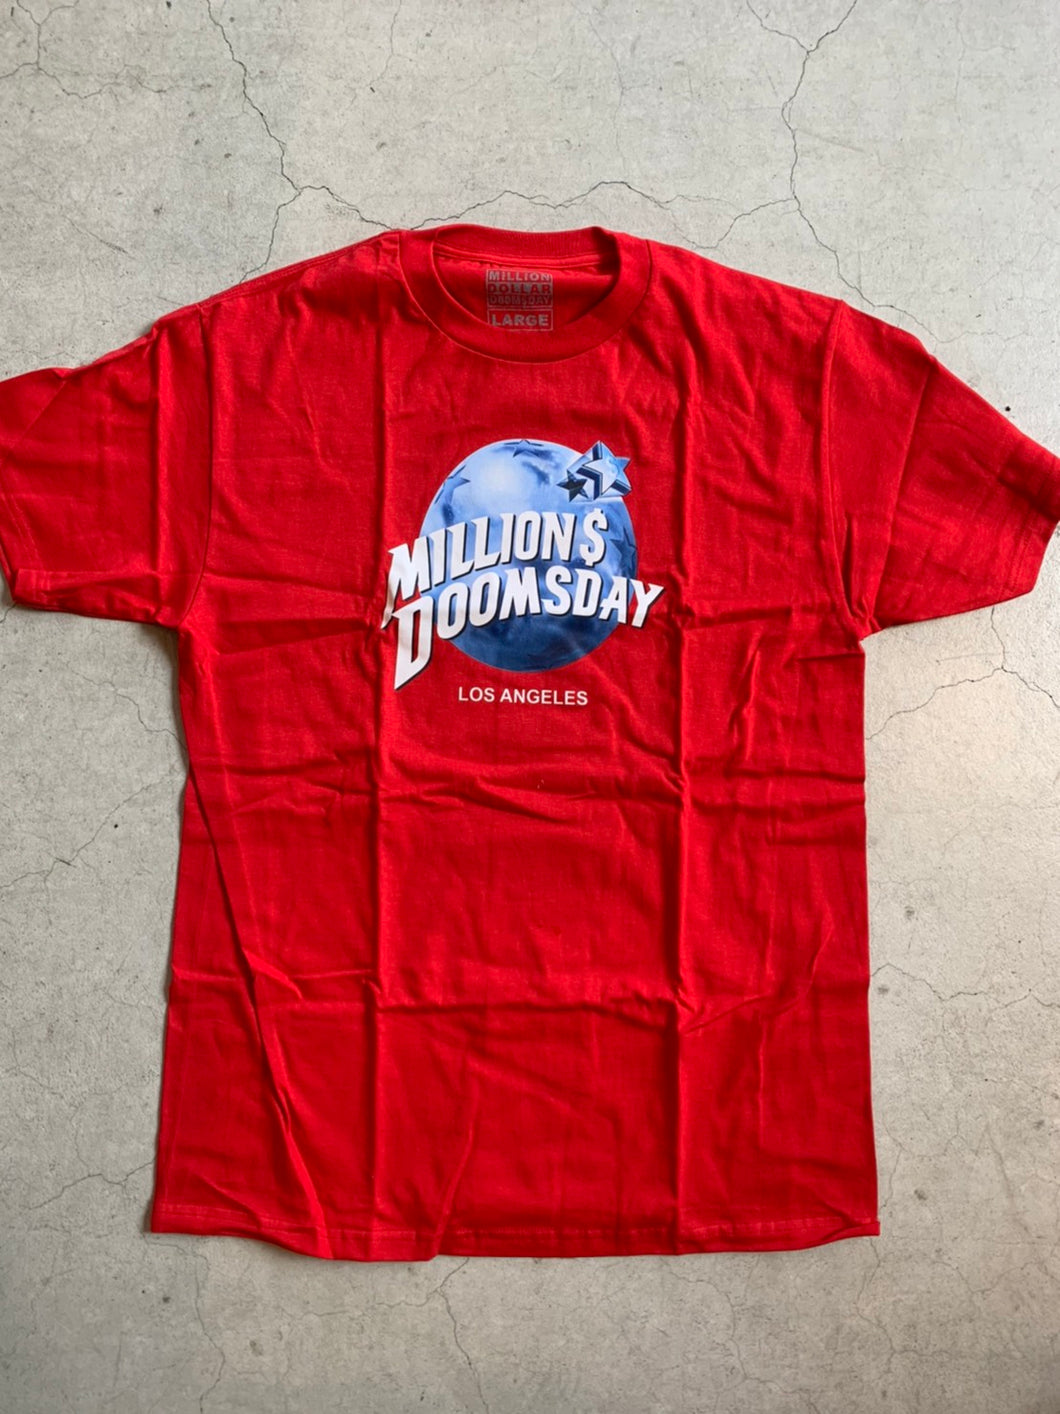 Million Dollar Doomsday planetdoomsday (tshirt)